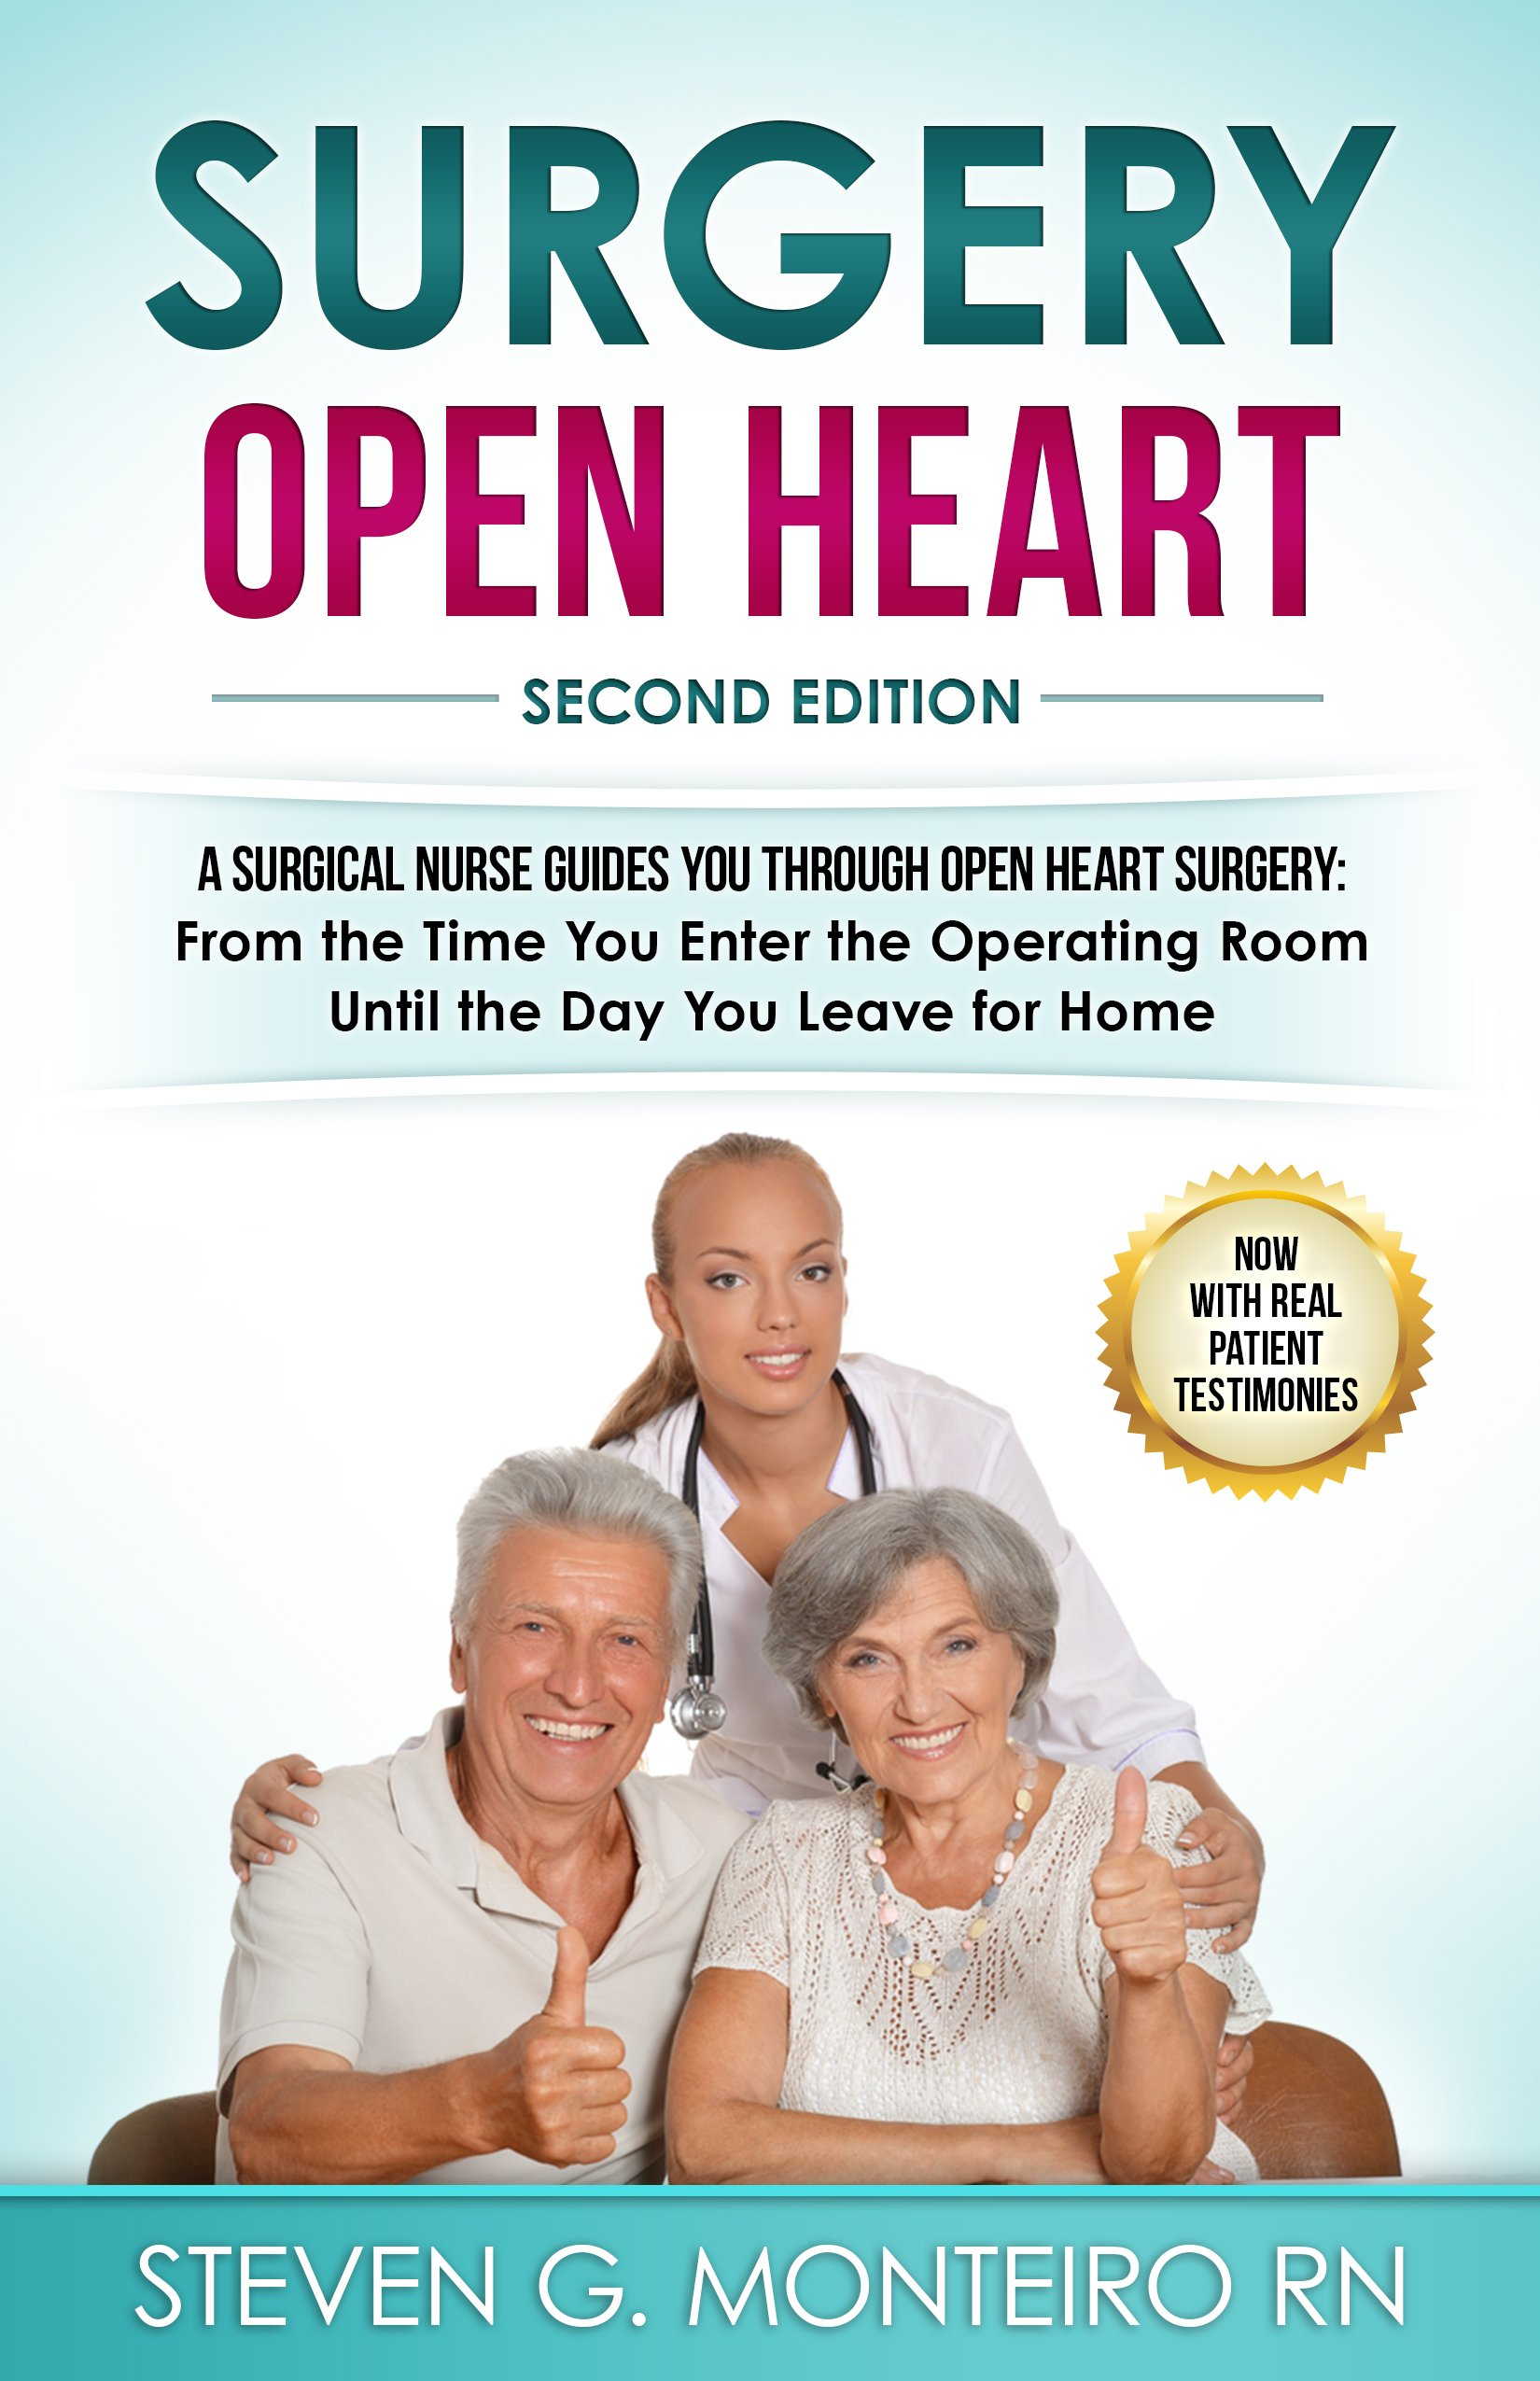 Surgery Open Heart: A Surgical Nurse Guides You